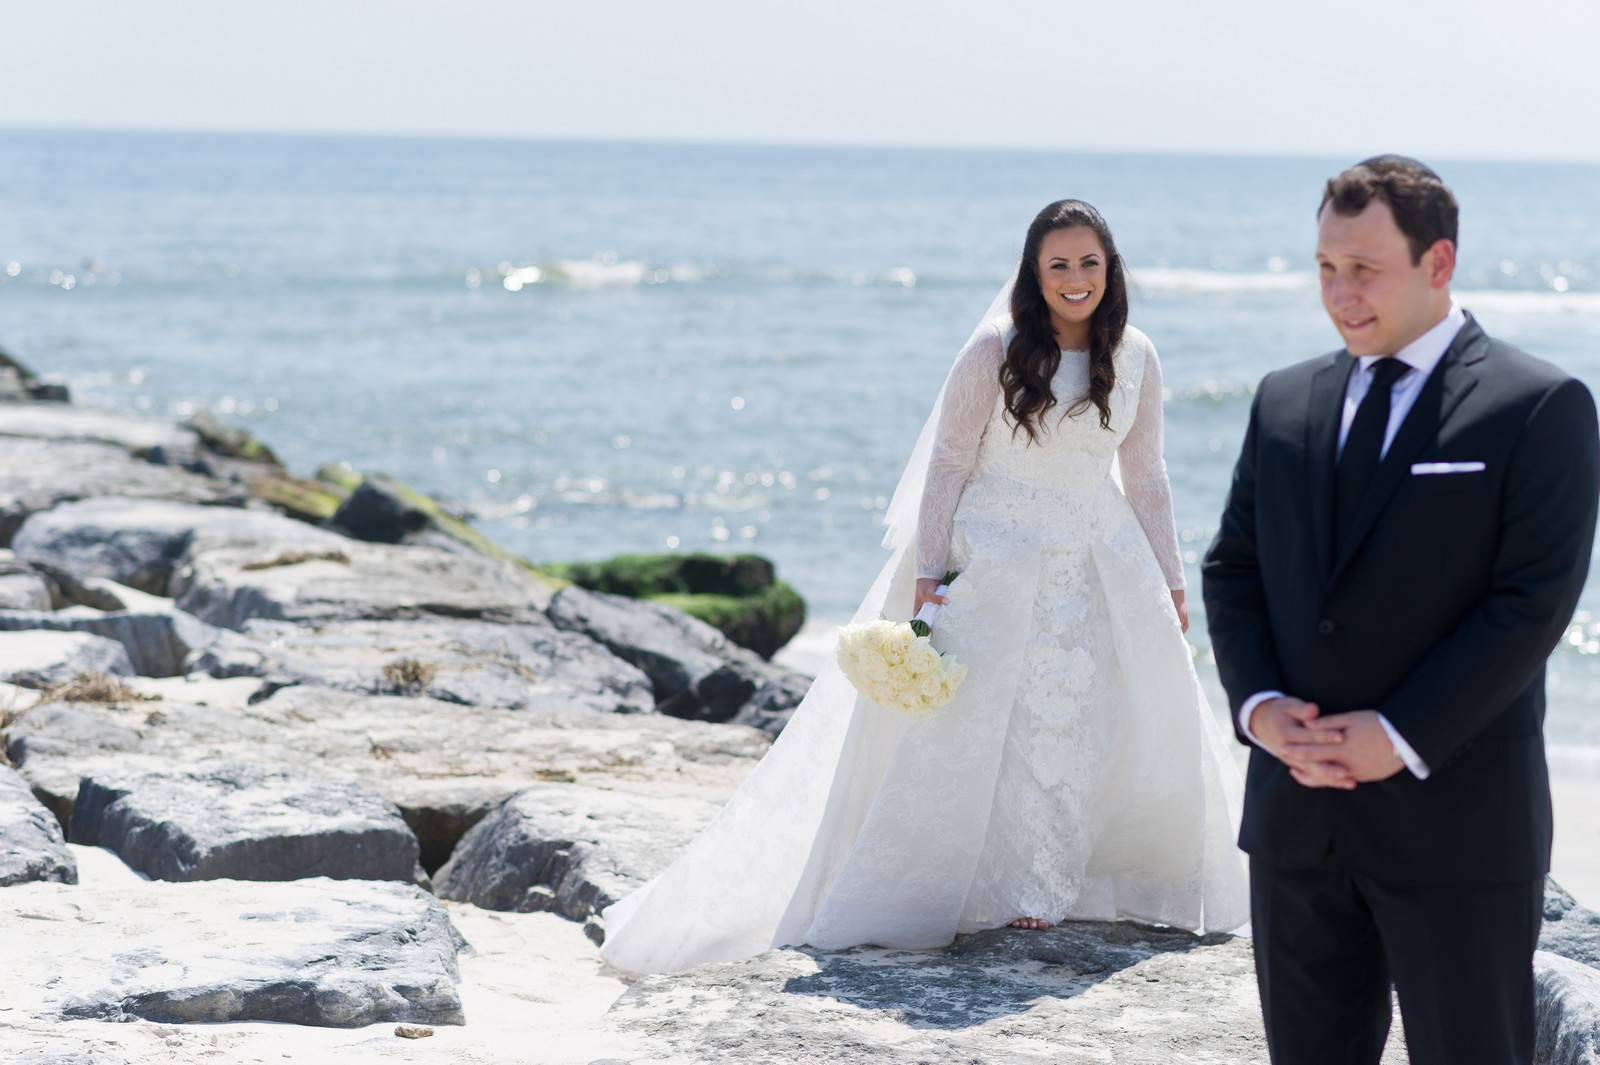 Talya and Michael's Modern Orthodox Jewish Wedding at The Sands, Atlantic Beach, NY Photos by Chaim Schvarcz Bride and Groom Portraits Couple